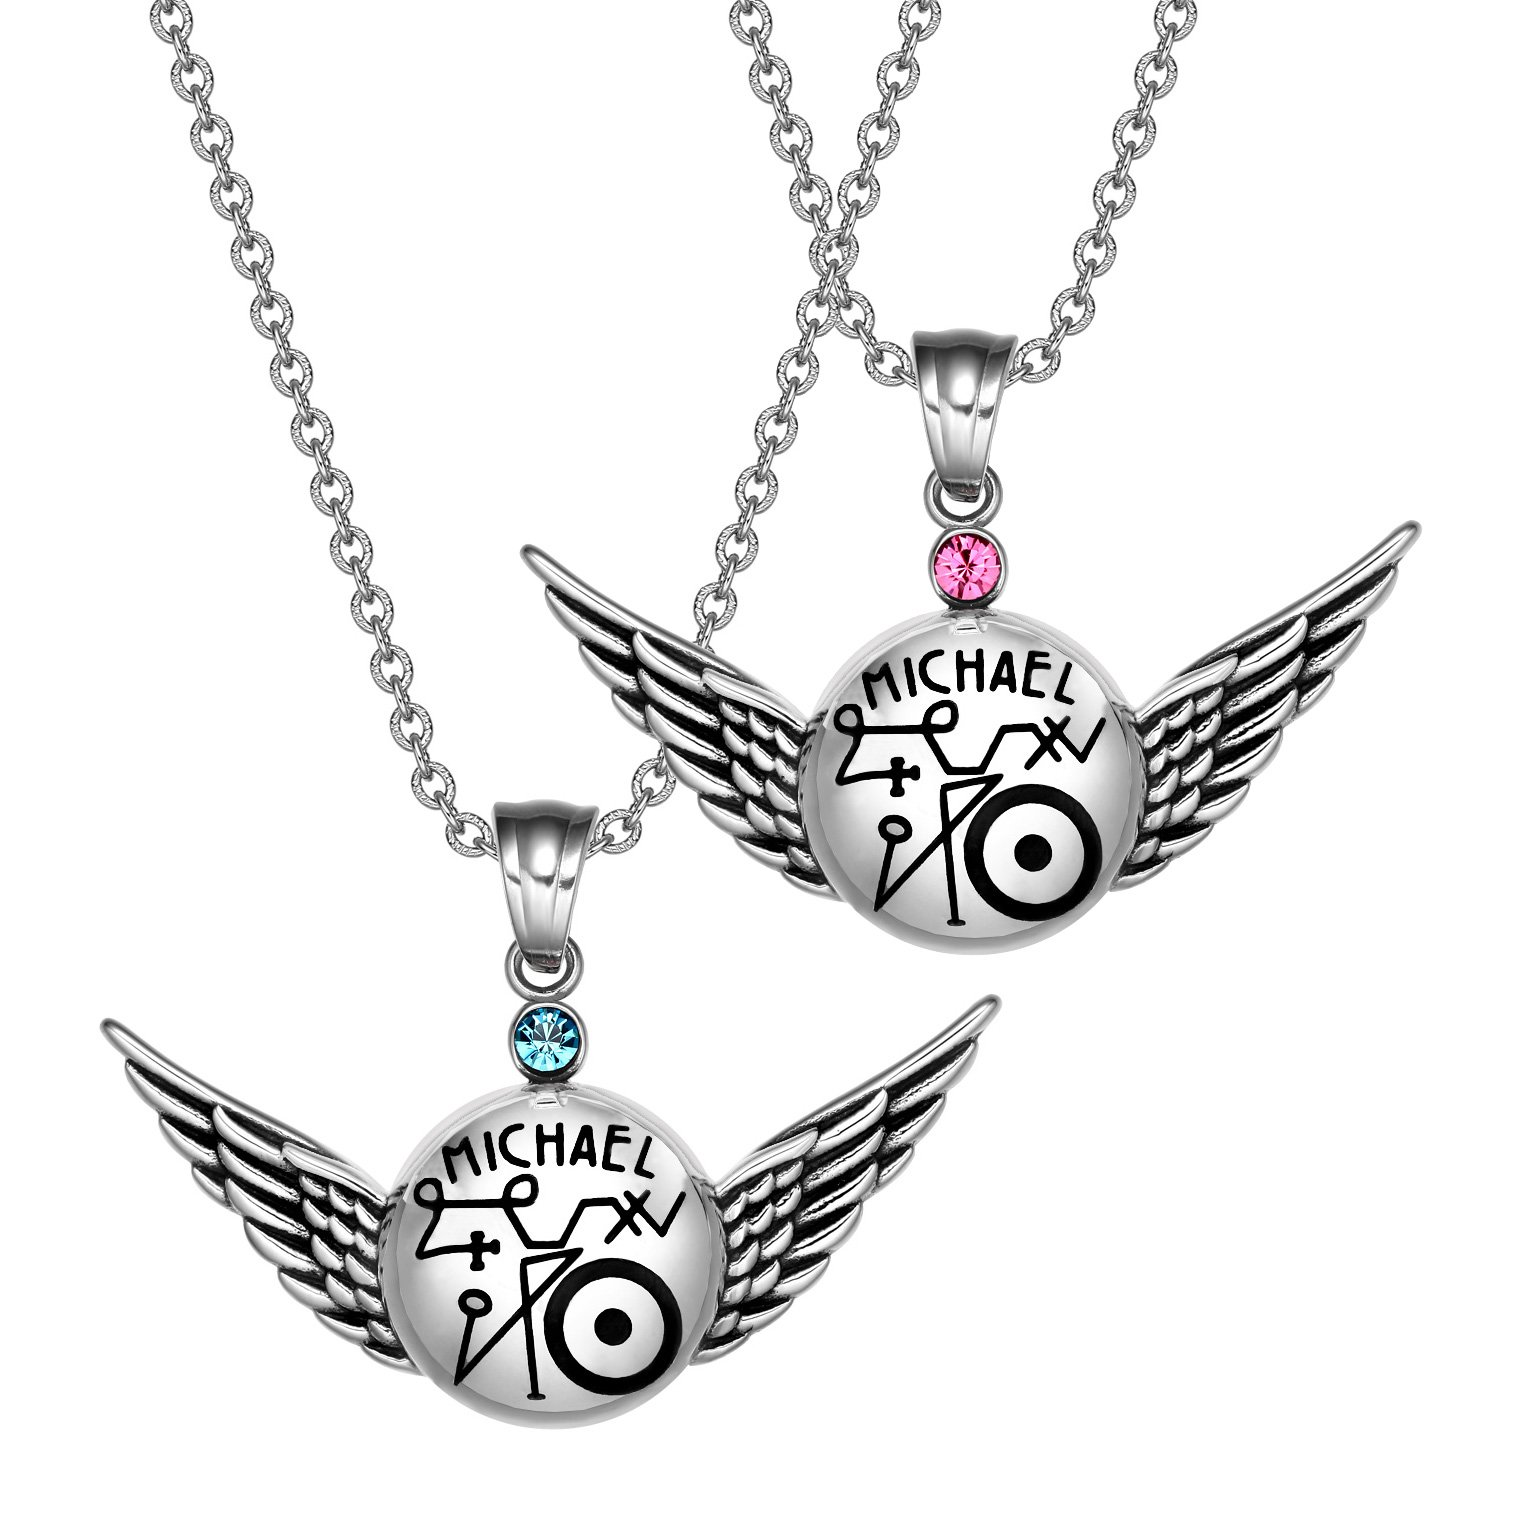 Archangel Michael Magic Amulets Love Couples Set Angel Wings Pendant Necklaces